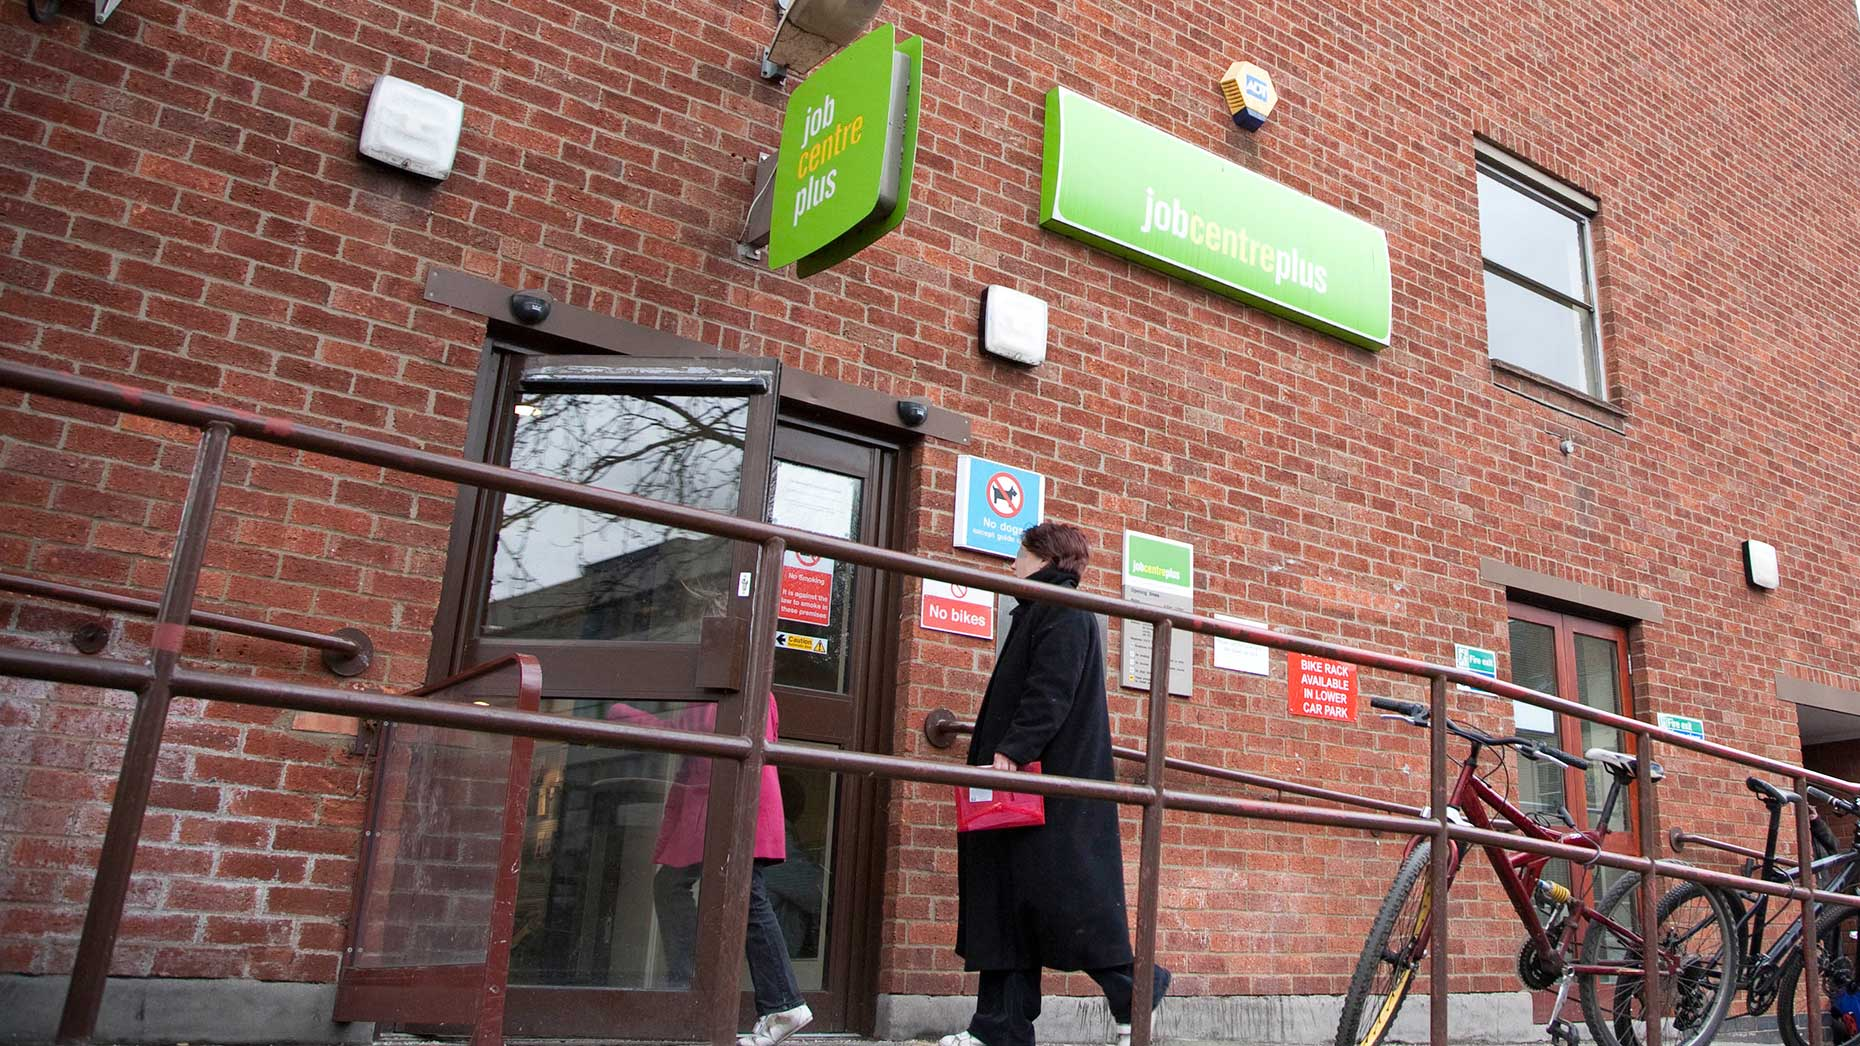 Jobcentre plus free phone number